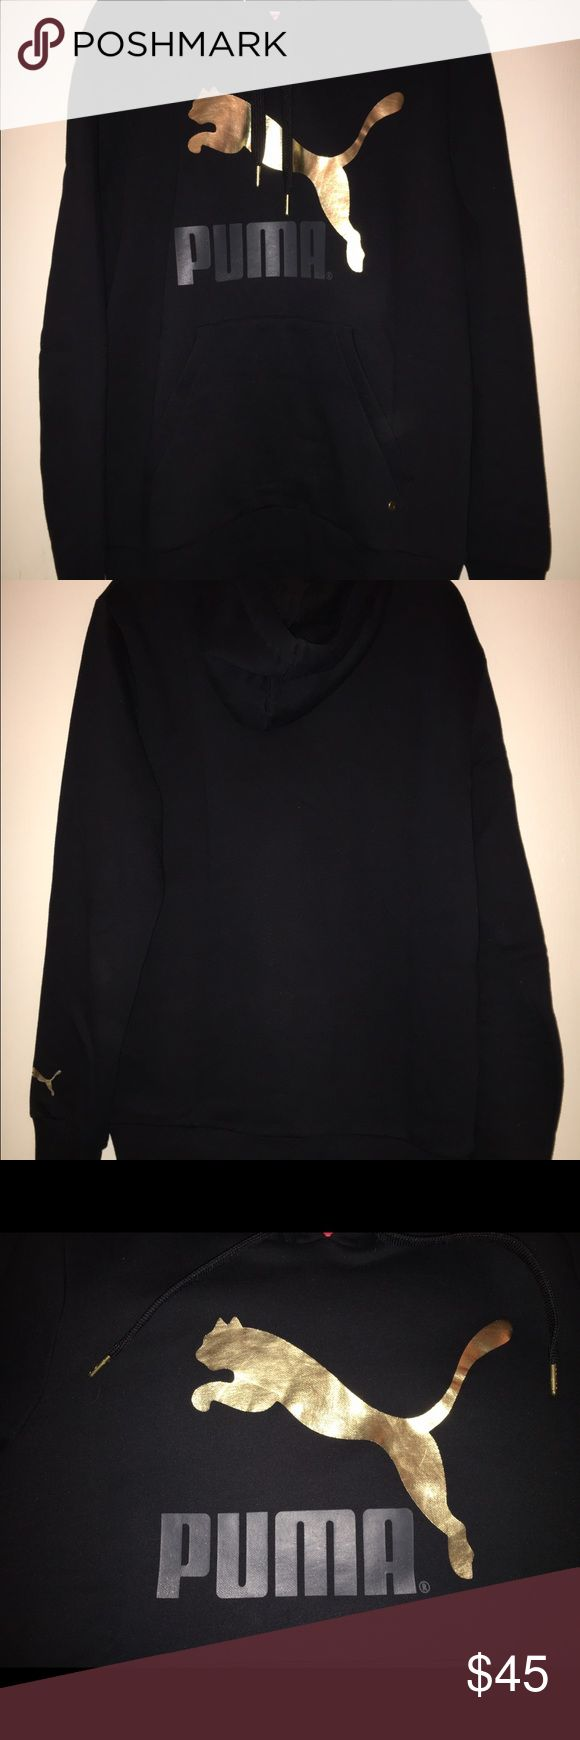 Men's Puma Black And Gold Hoodie New with out tags Men's Puma Black And Gold Hoodie size M with pocket. Puma Sweaters